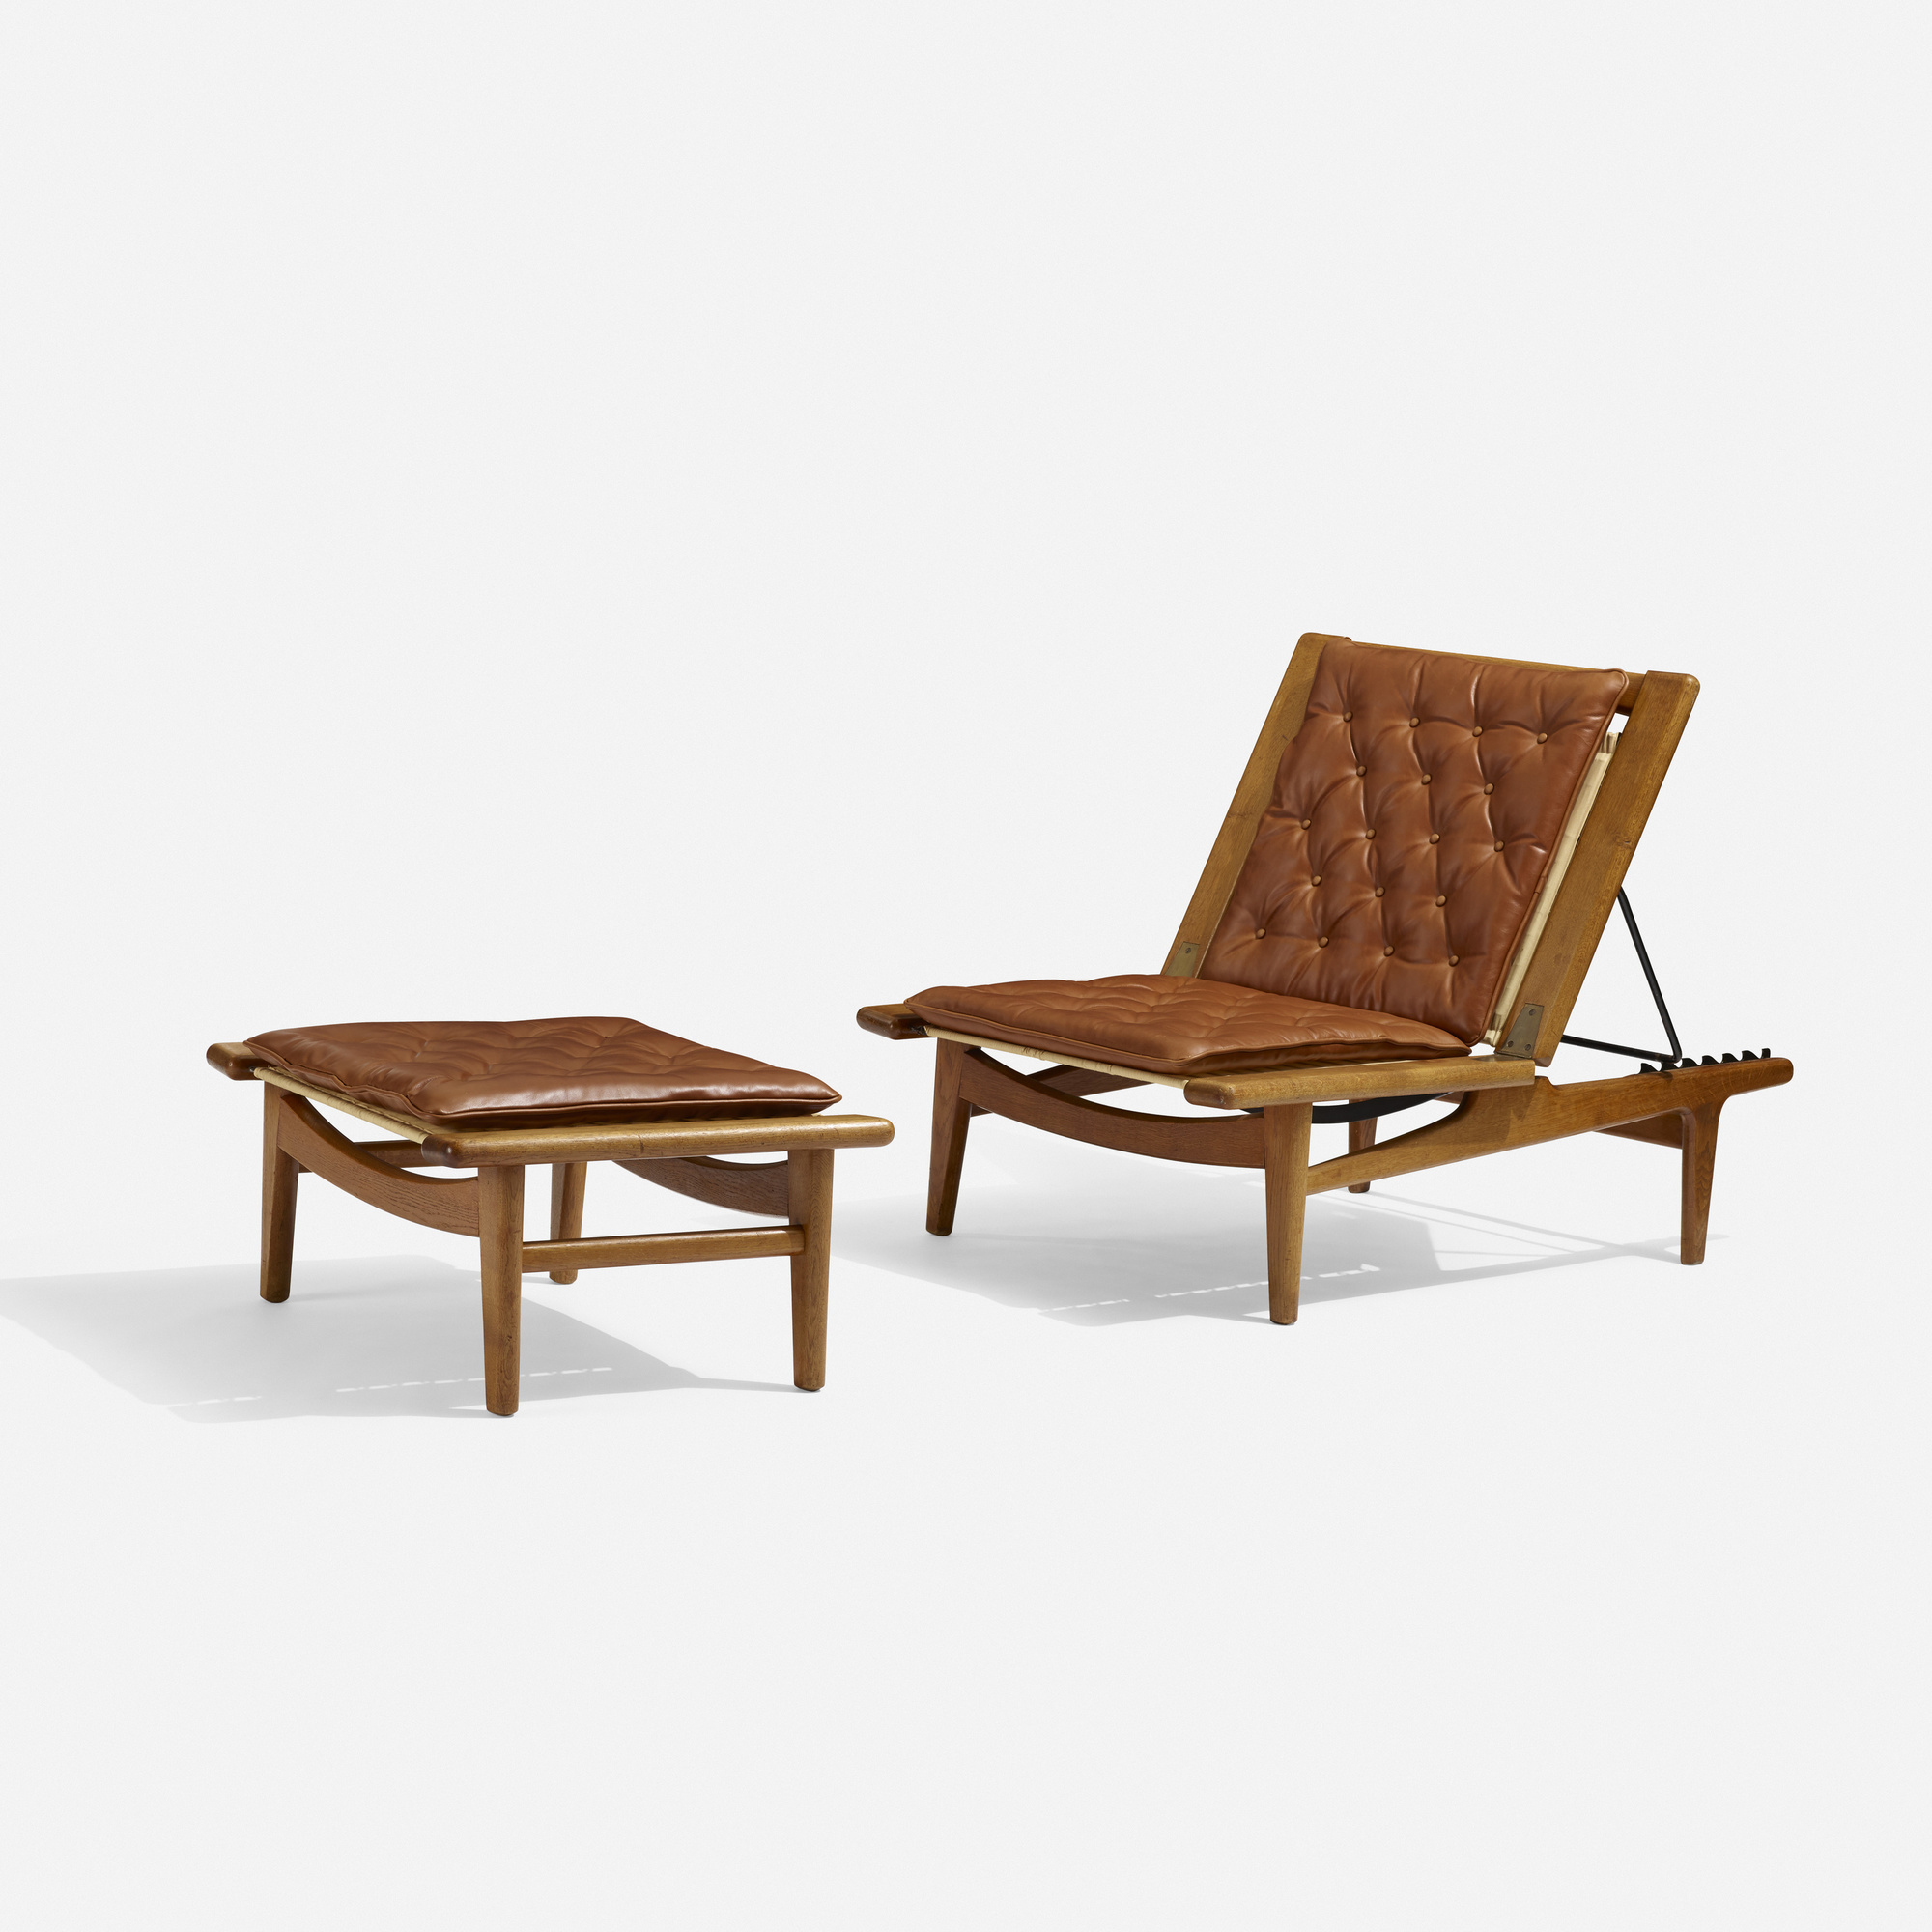 114 Hans J Wegner Chaise Lounge And Ottoman 1 Of 4